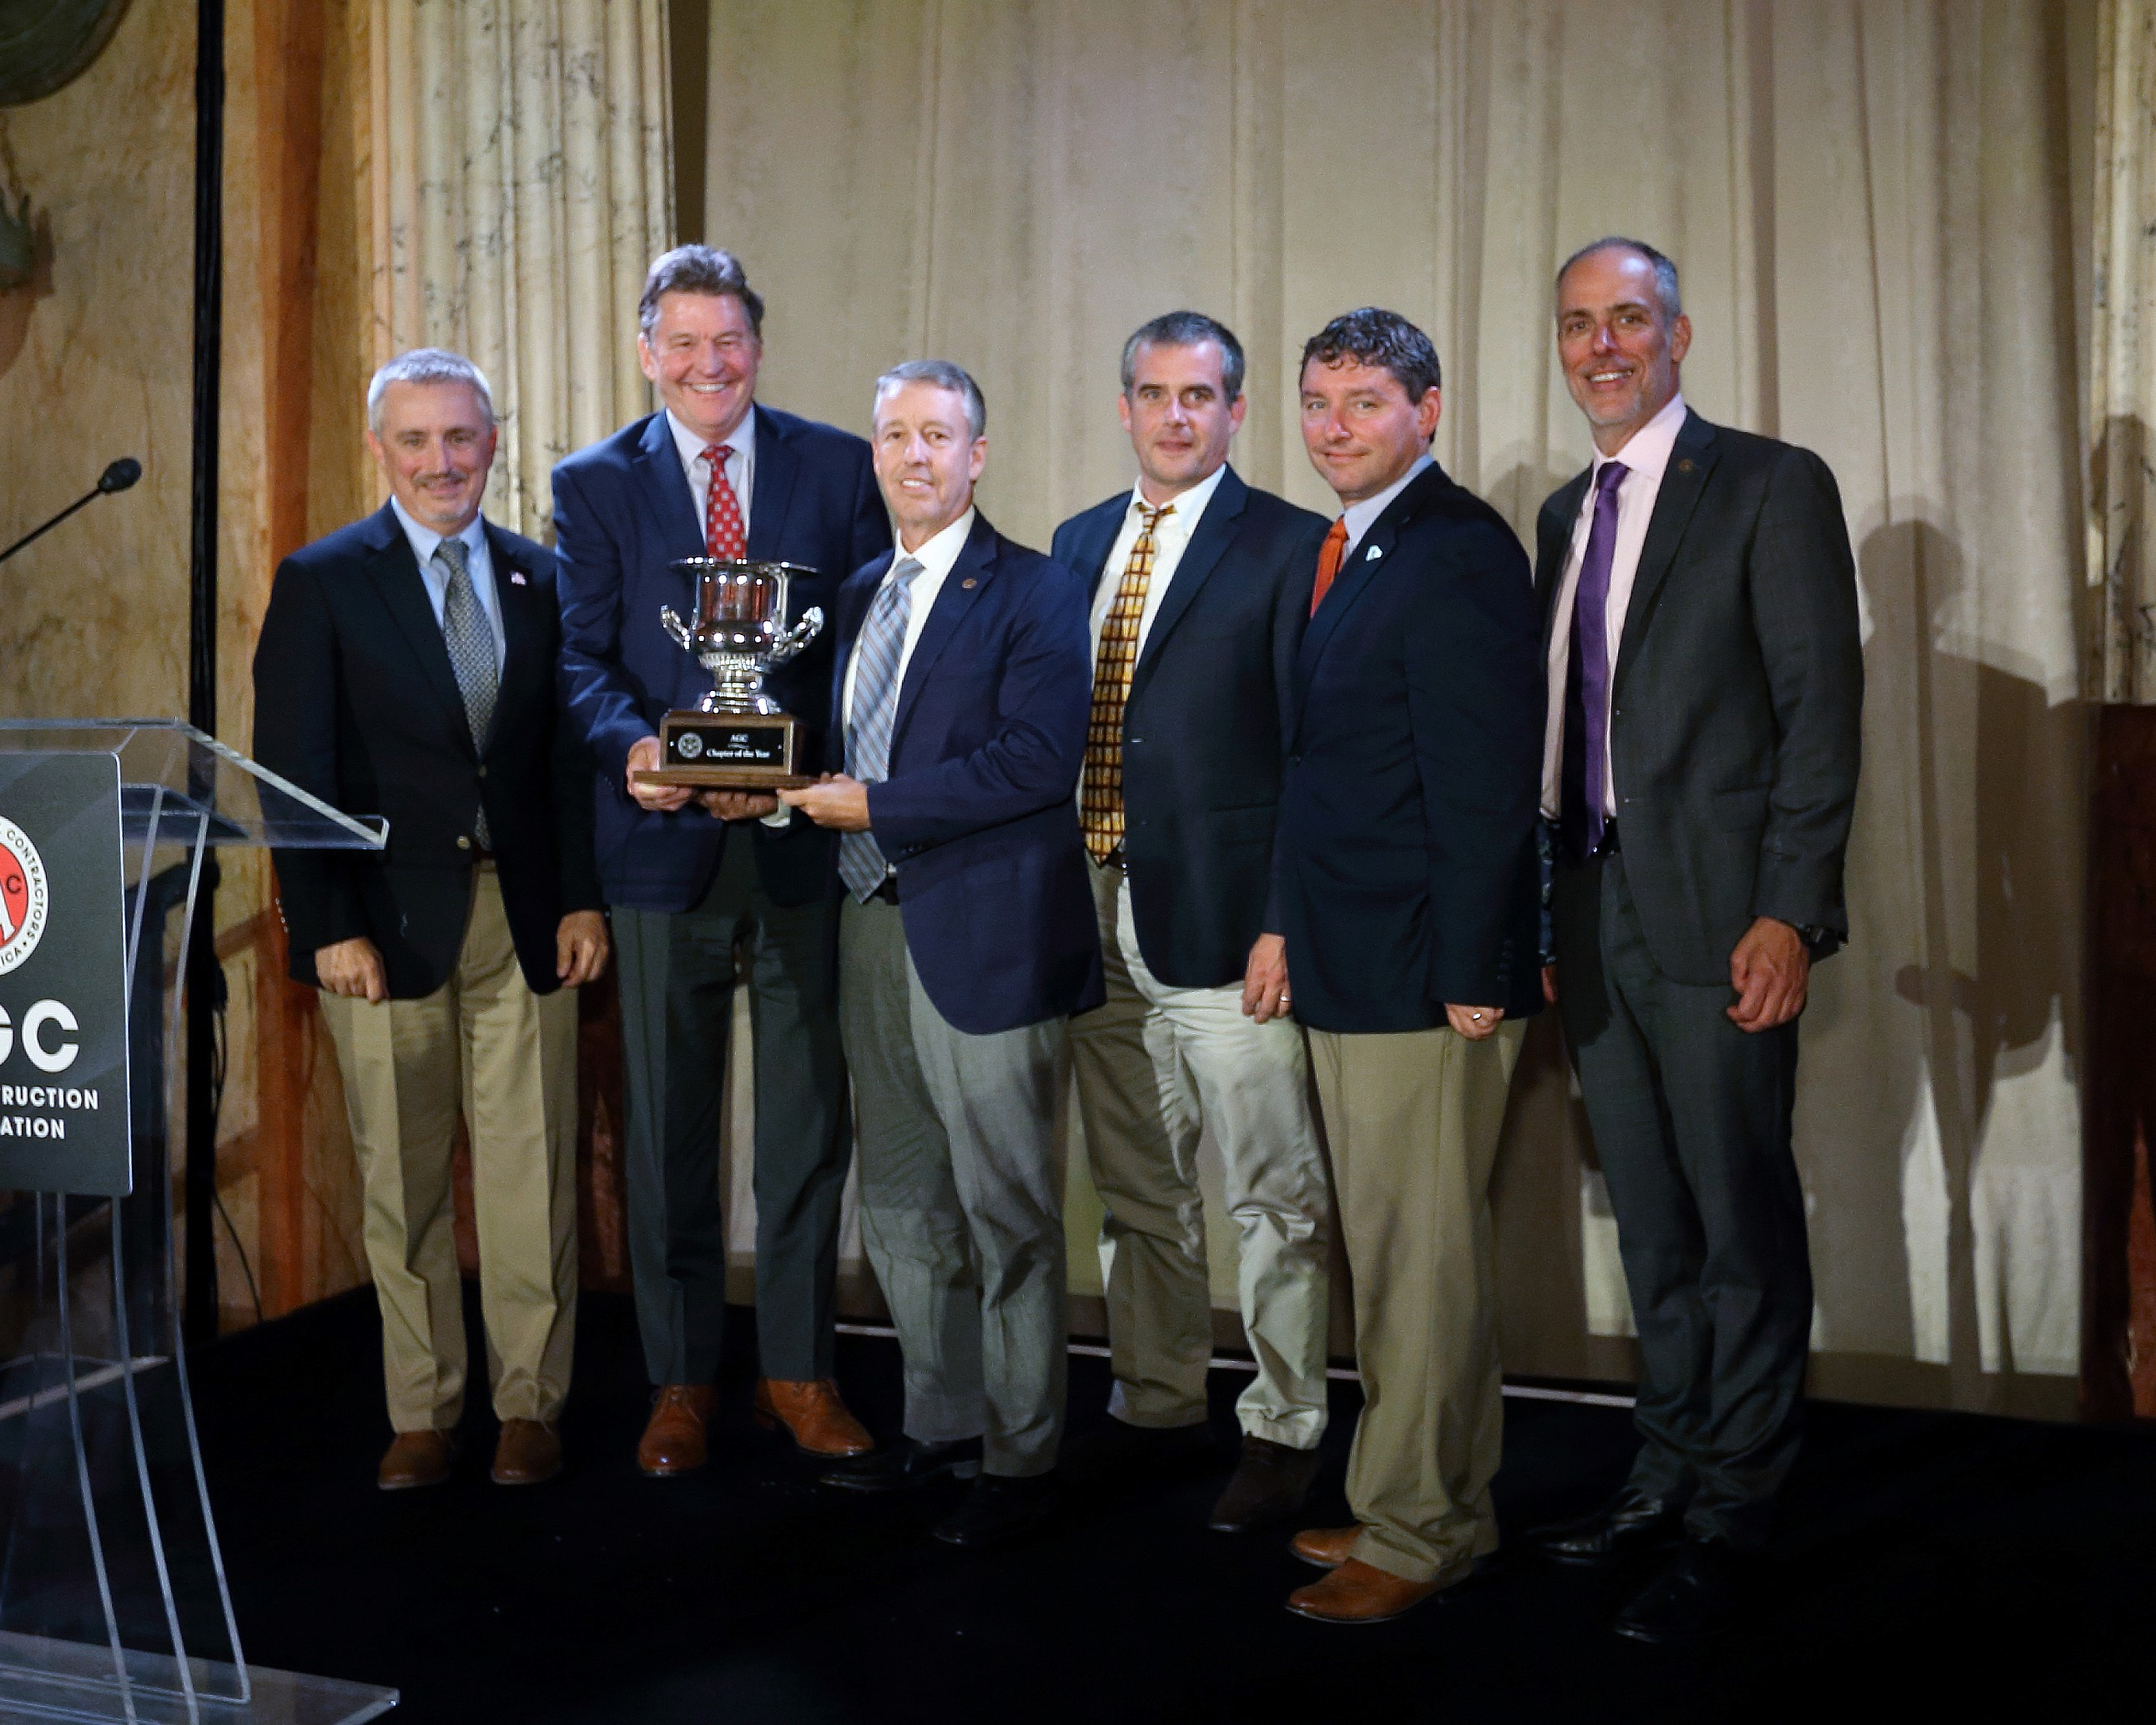 CAGC Earns Chapter of the Year Award